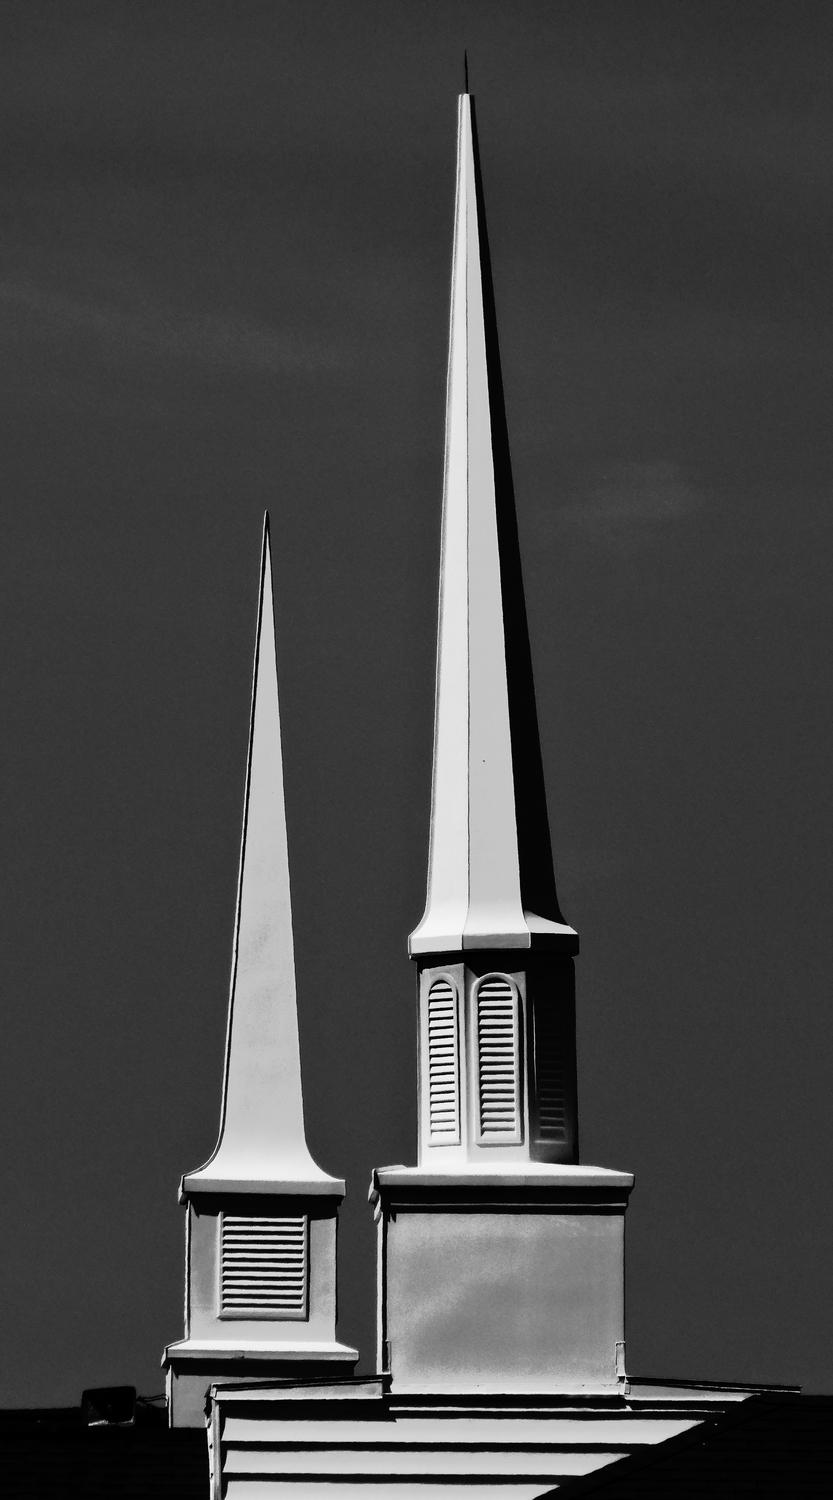 - Black and white study of two steeples. - Manassas Virginia, Panasonic DMC-ZS40 - - art  - photography - by Tony Karp